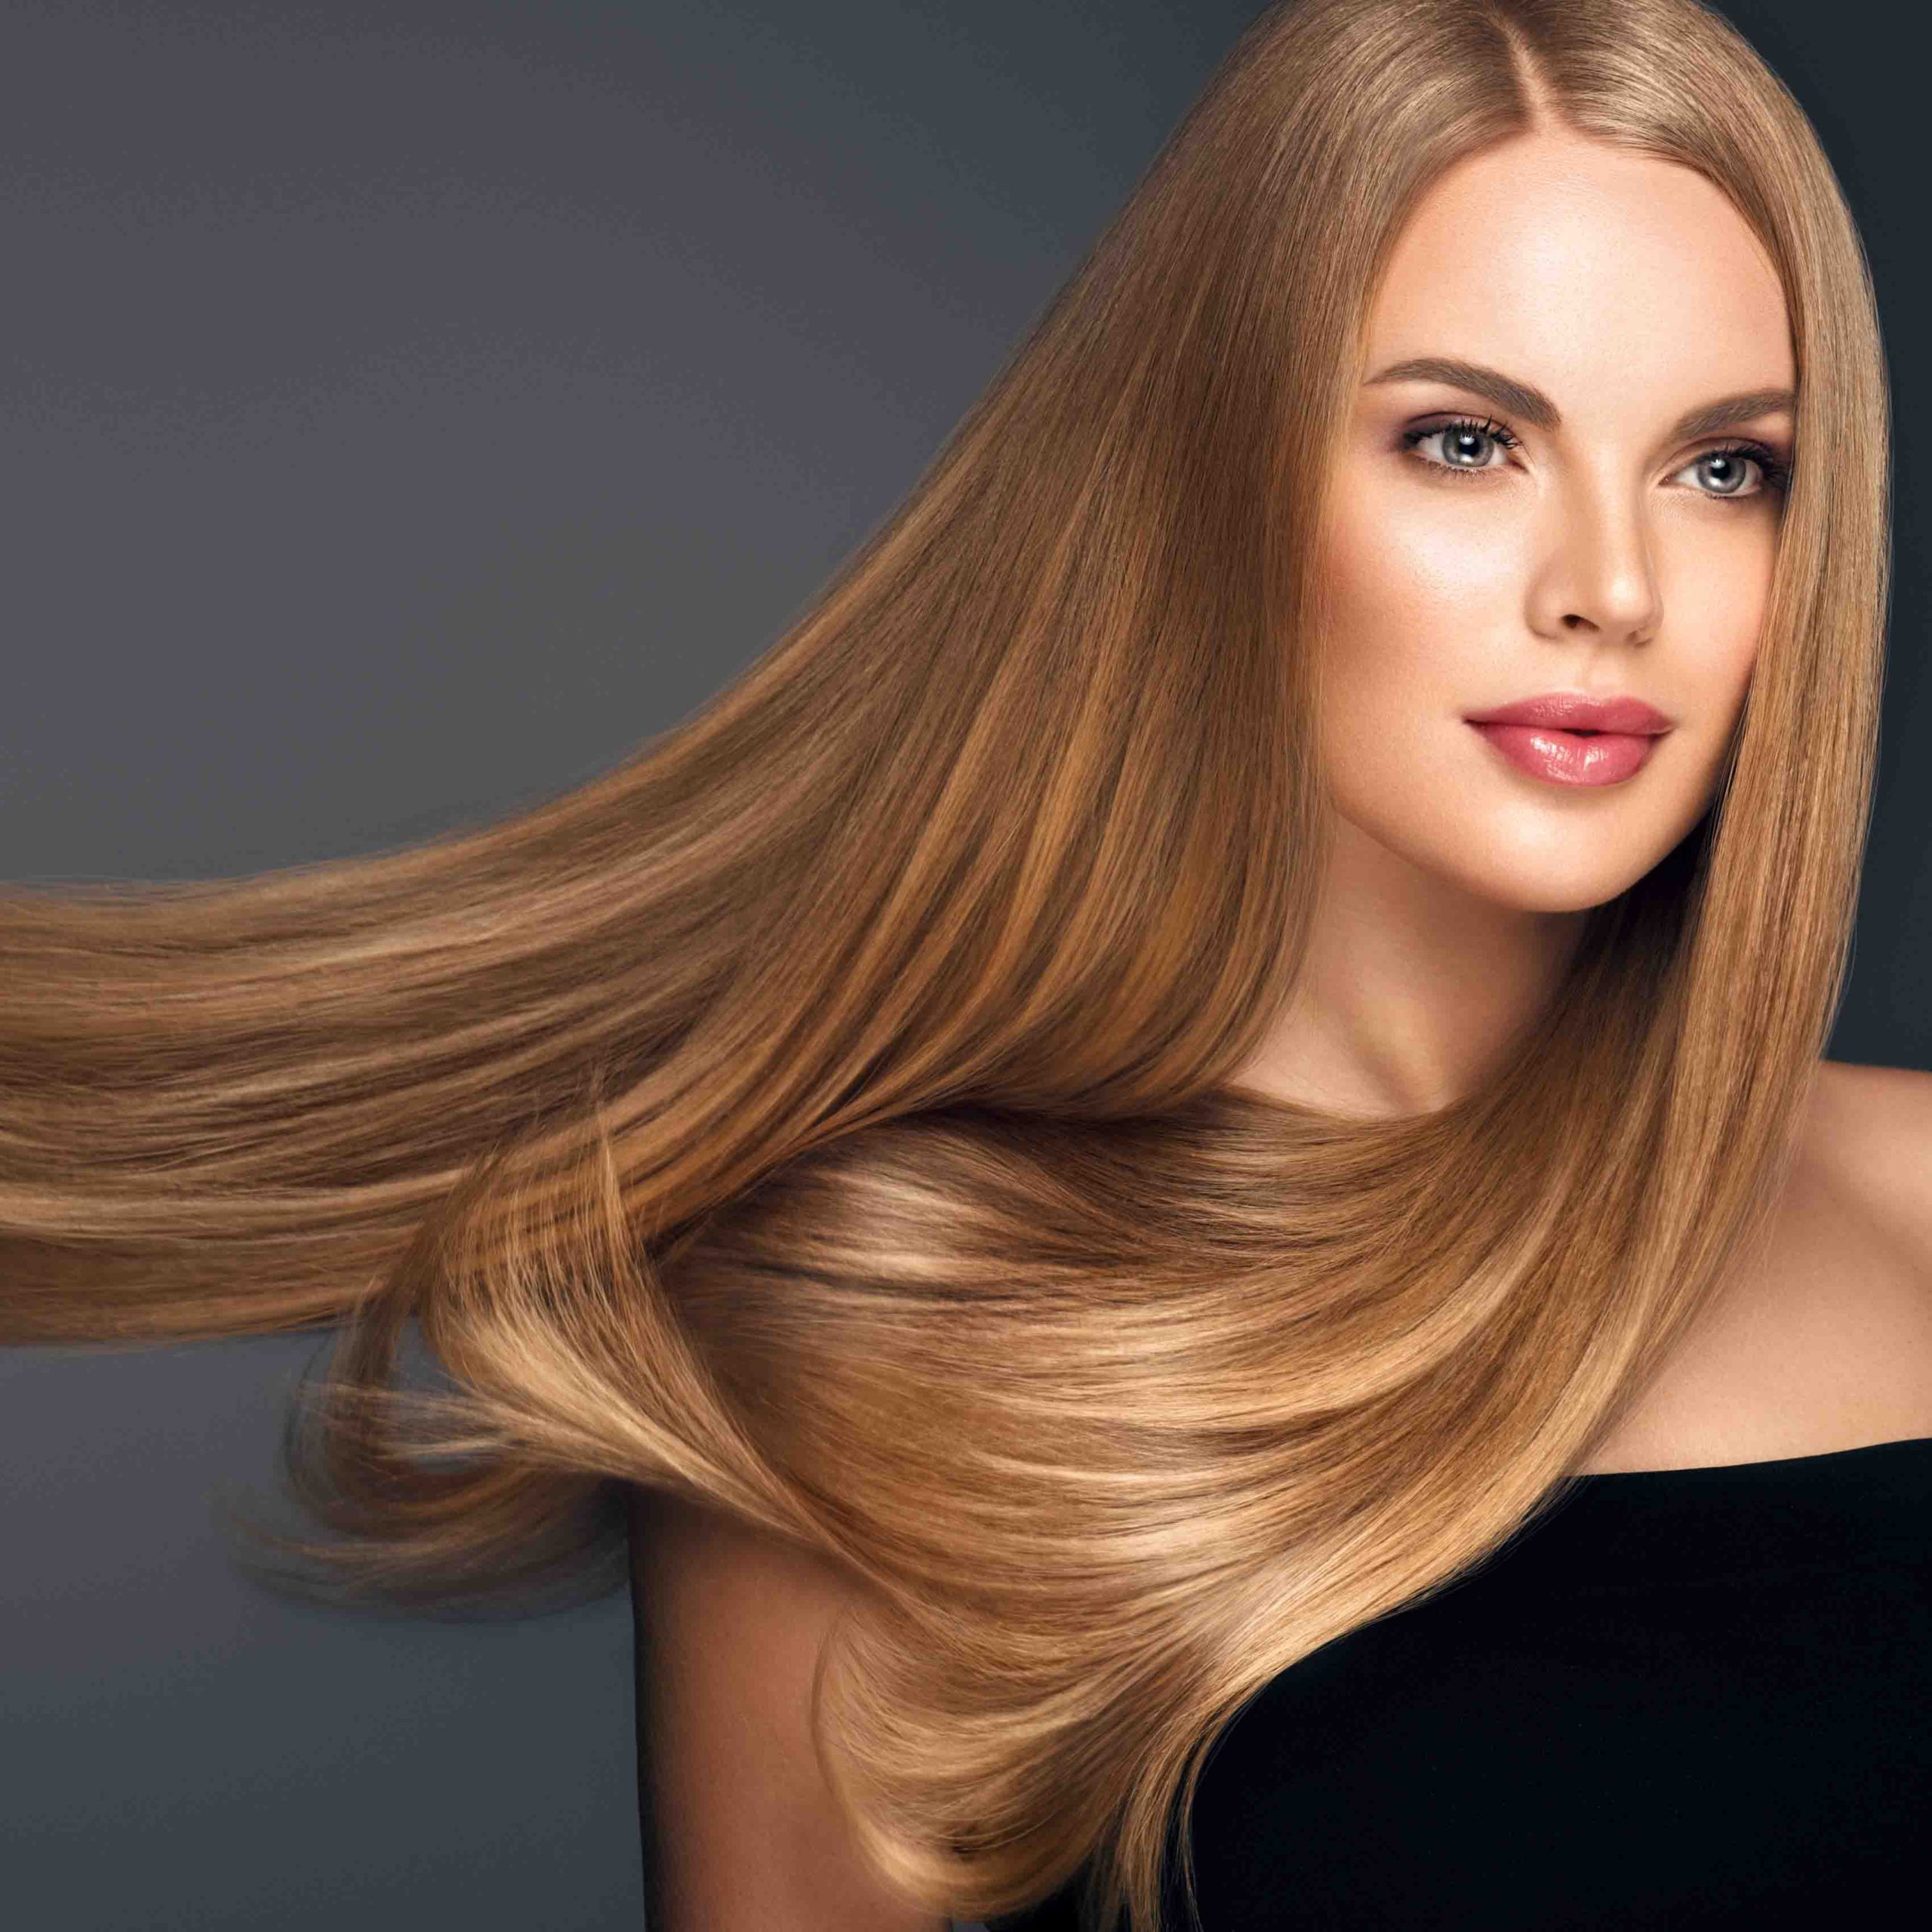 trend-capelli-lunghi-autunno-hairlovers-style.jpg